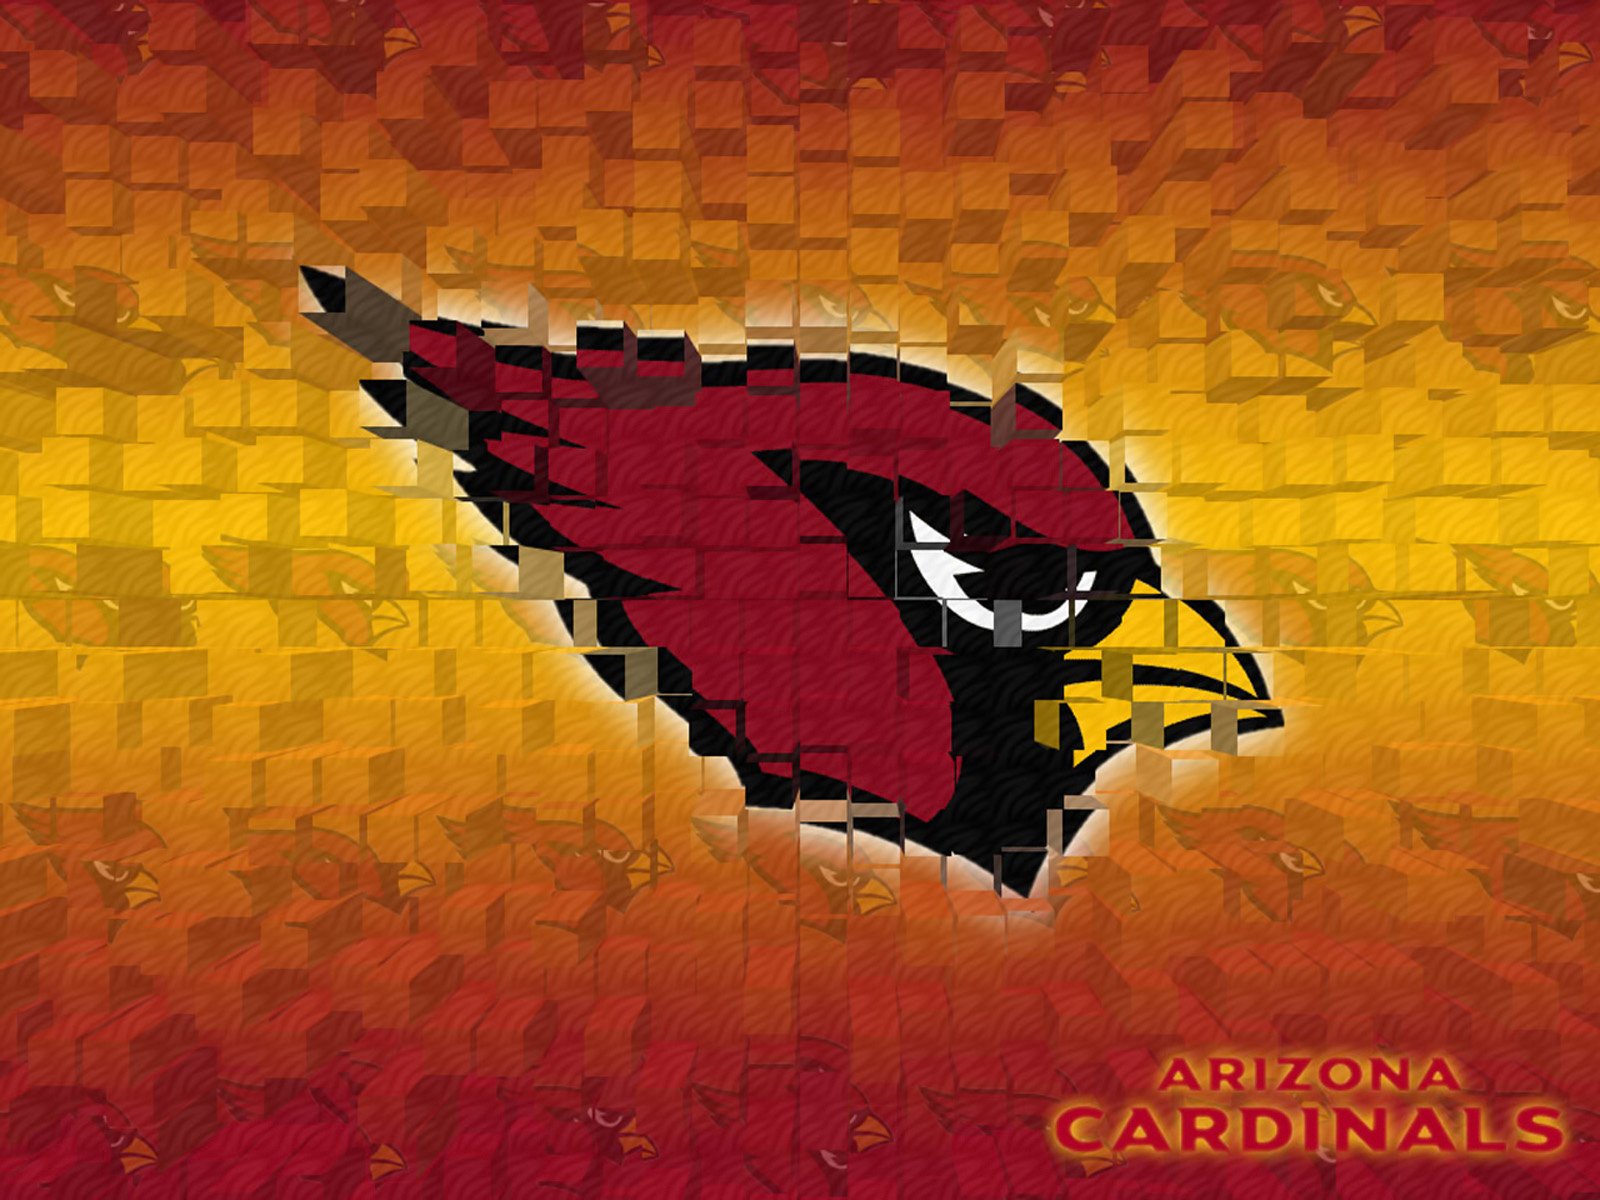 Inspirational Wallpapers Hd Free Download Arizona Cardinals Backgrounds Pixelstalk Net